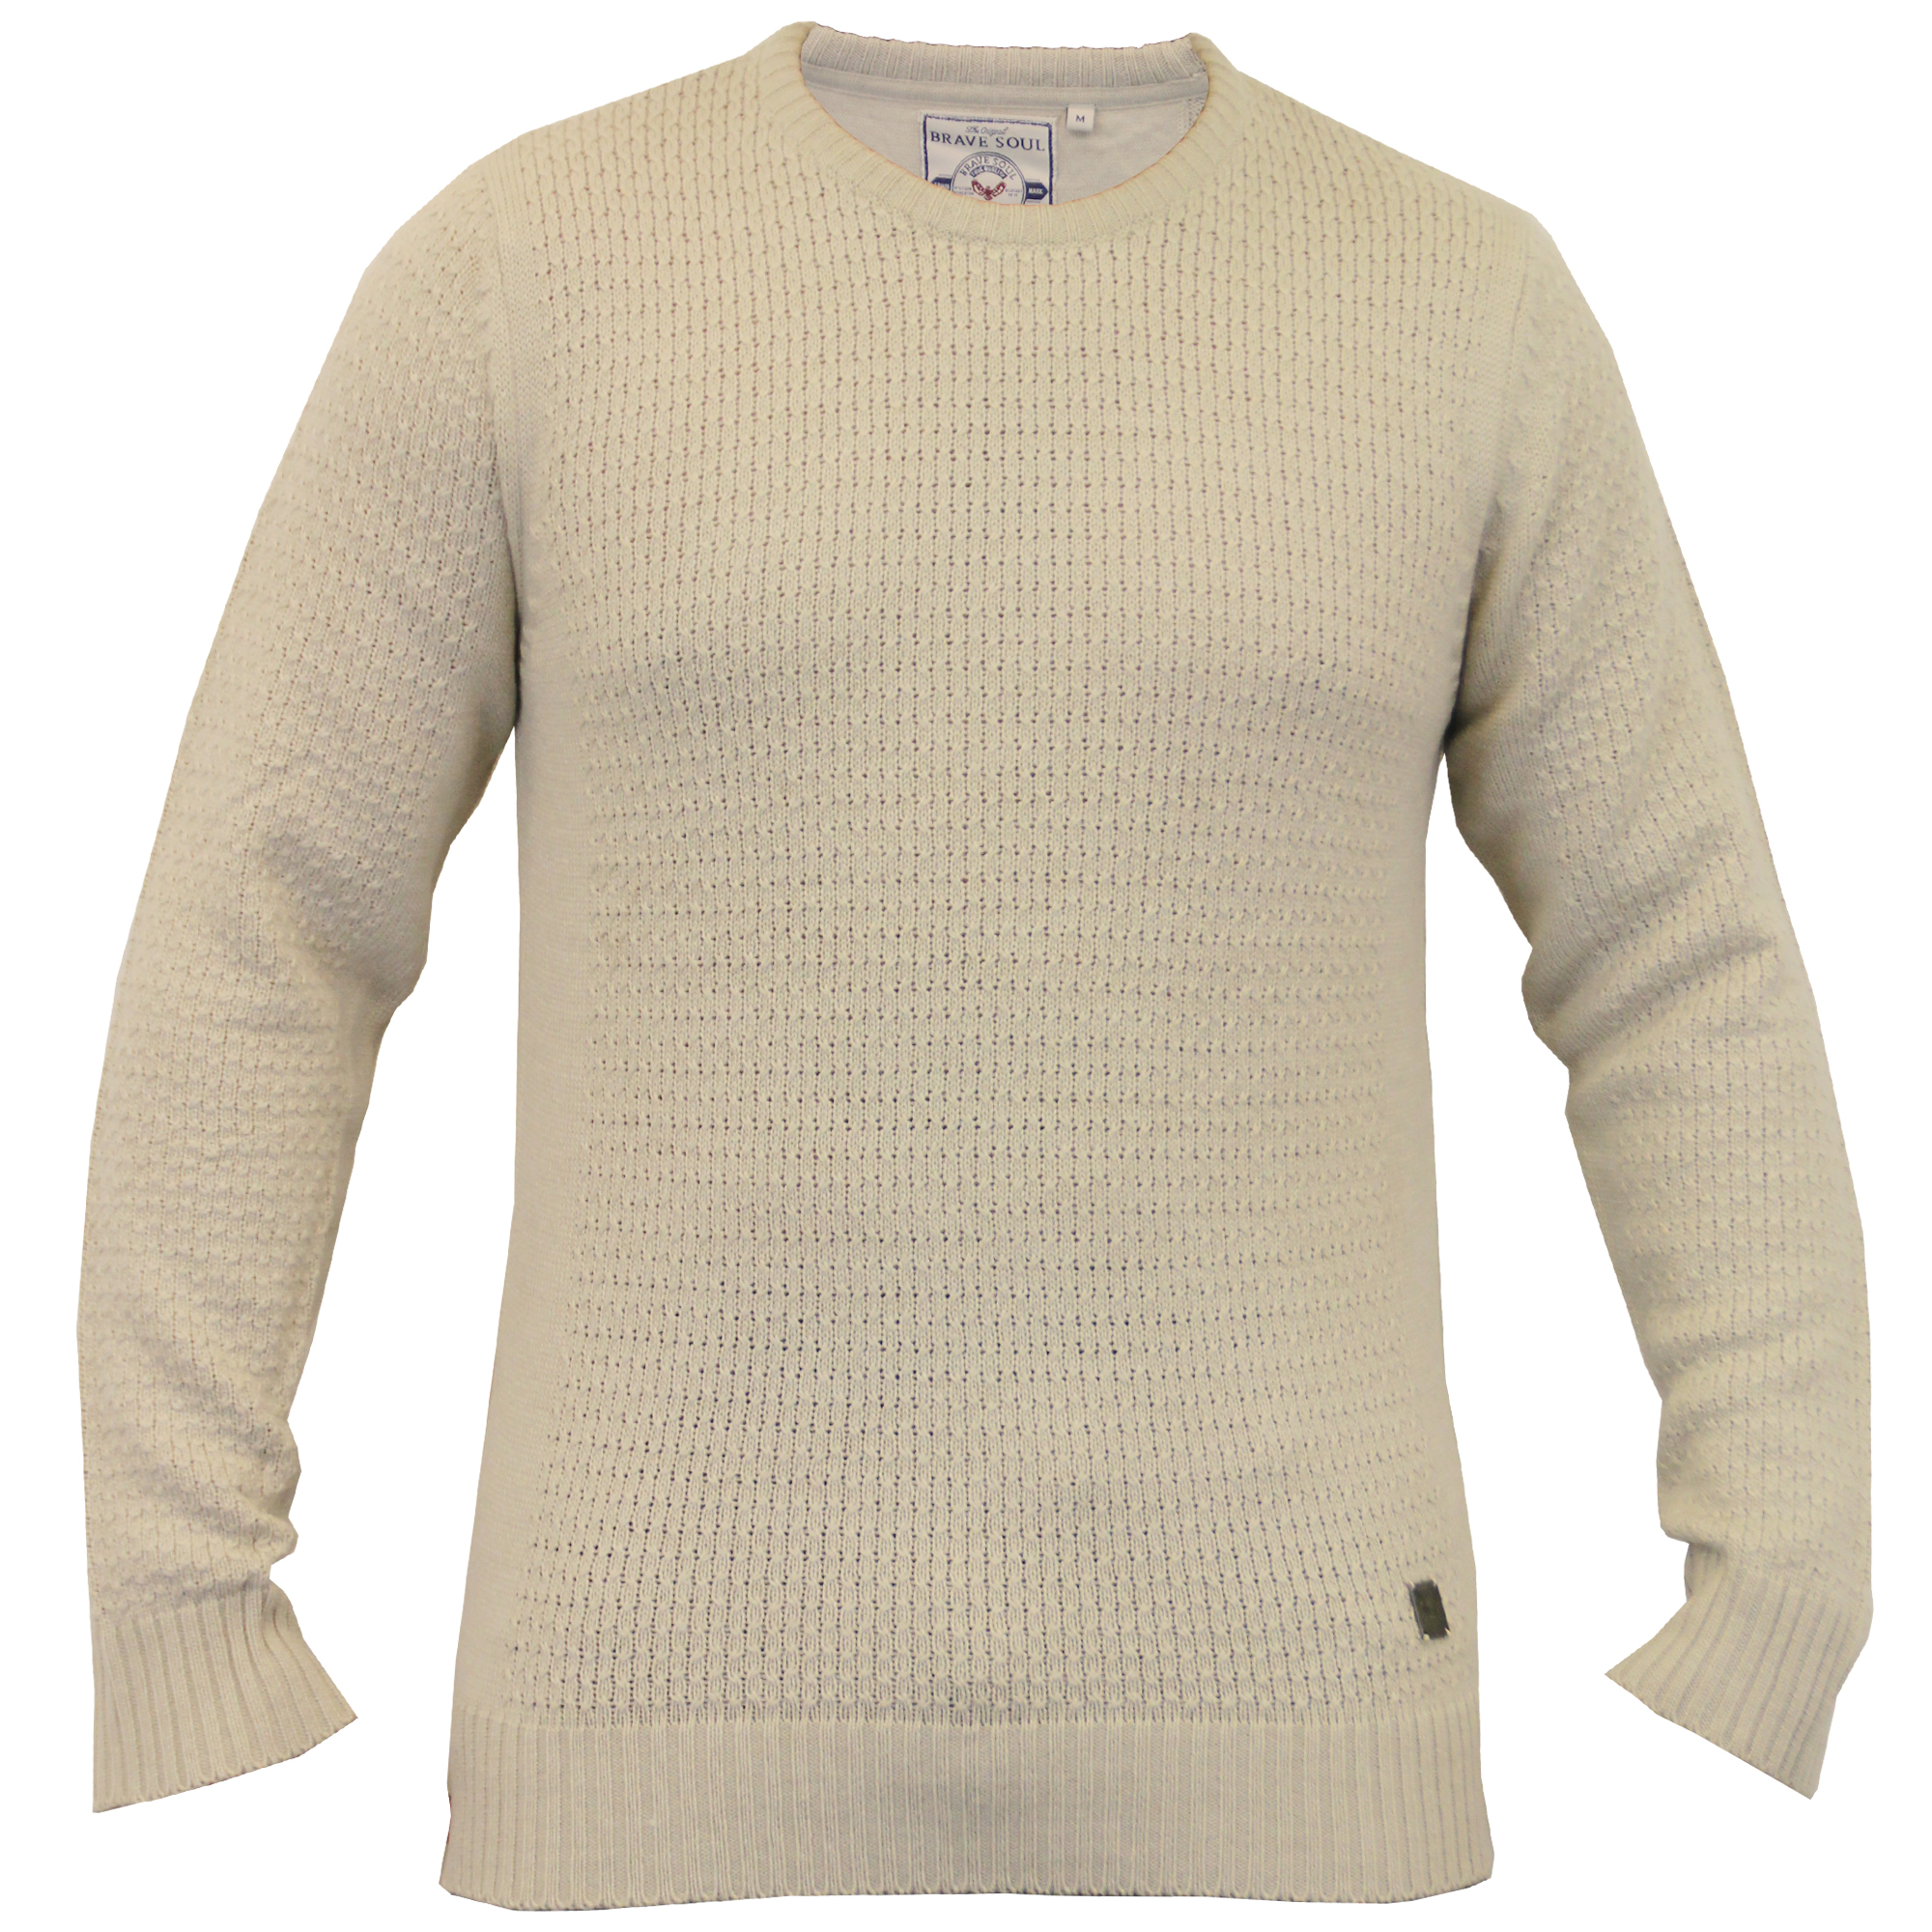 Mens-Knitted-Sweater-Pullover-Jumpers-By-Brave-Soul thumbnail 8